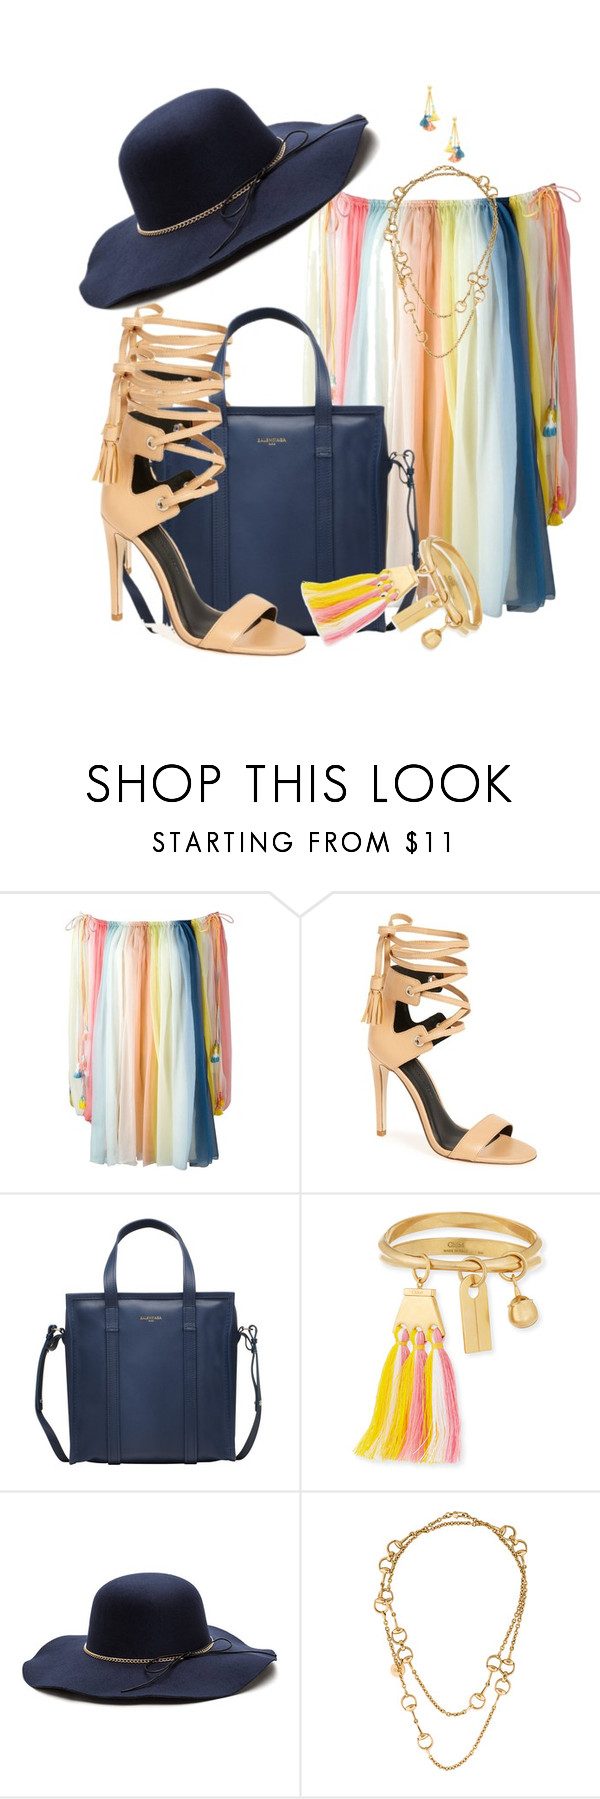 """COLOURS by DaNewMeh"" by thchosn ❤ liked on Polyvore featuring Chloé, Rebecca Minkoff, Balenciaga, Gucci and Ben-Amun"